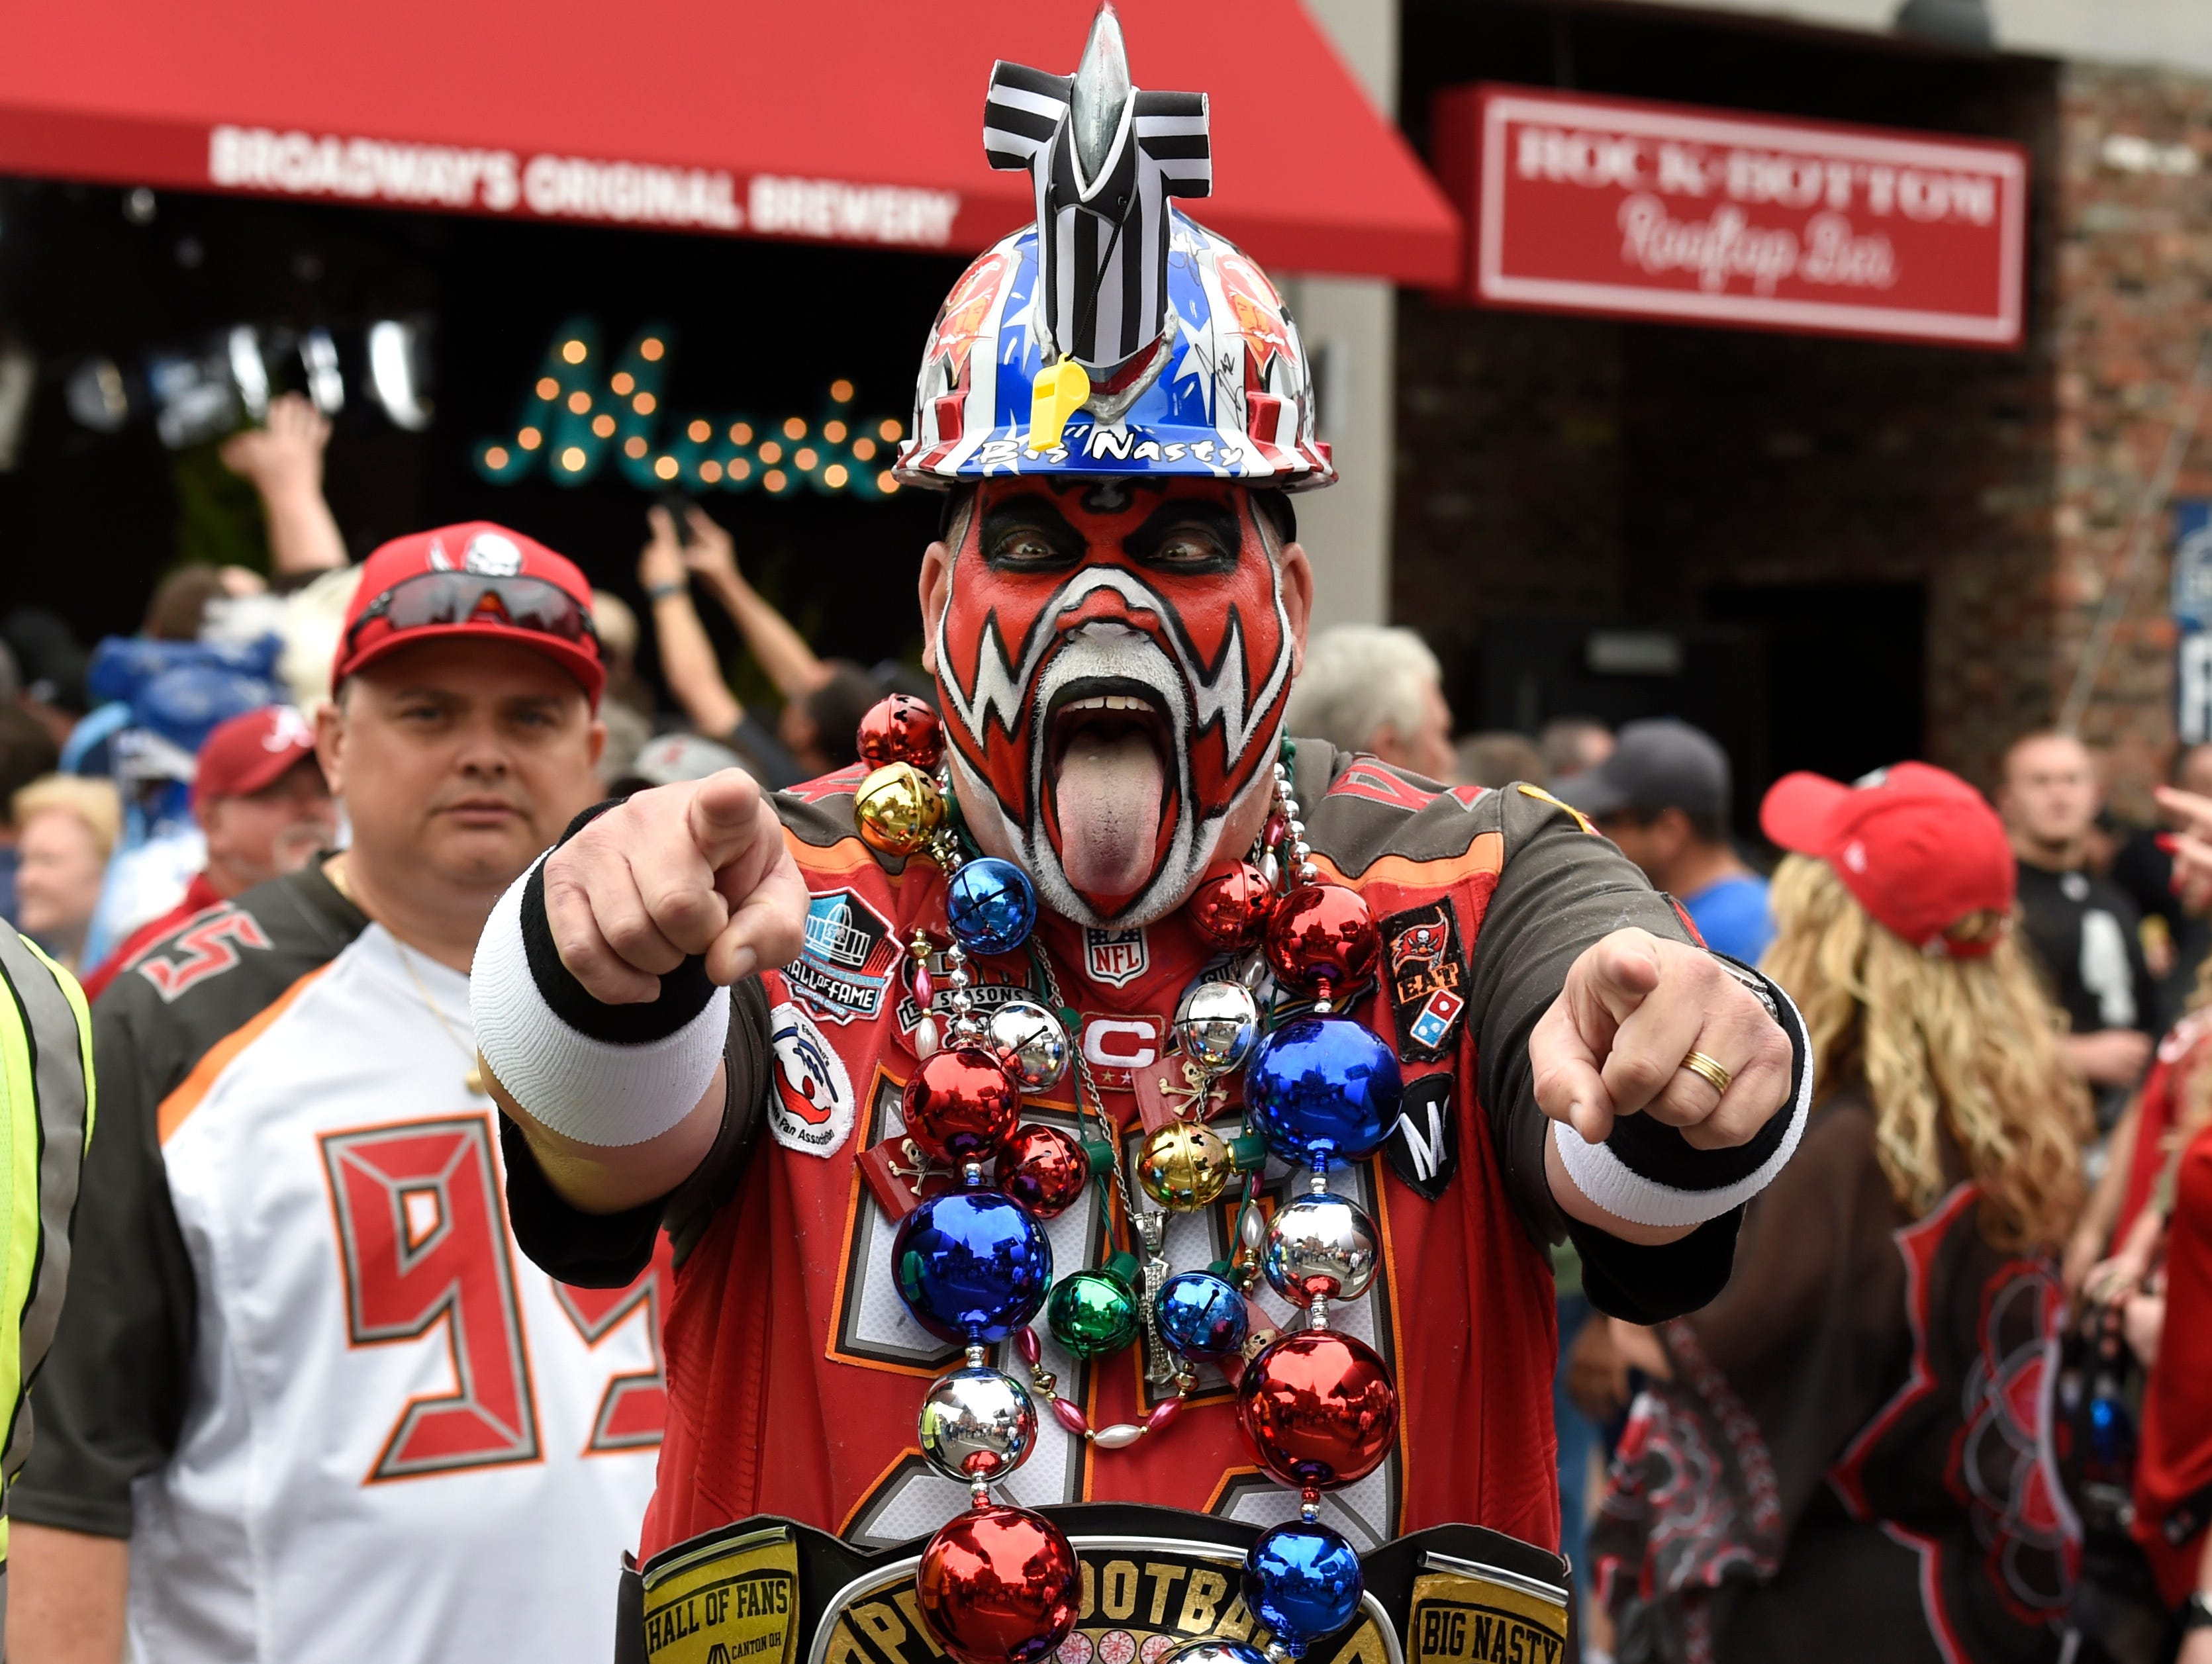 Tampa Bay fan Keith Kunzig celebrates before the first round of the NFL Draft Thursday, April 25, 2019 in Nashville, Tenn.